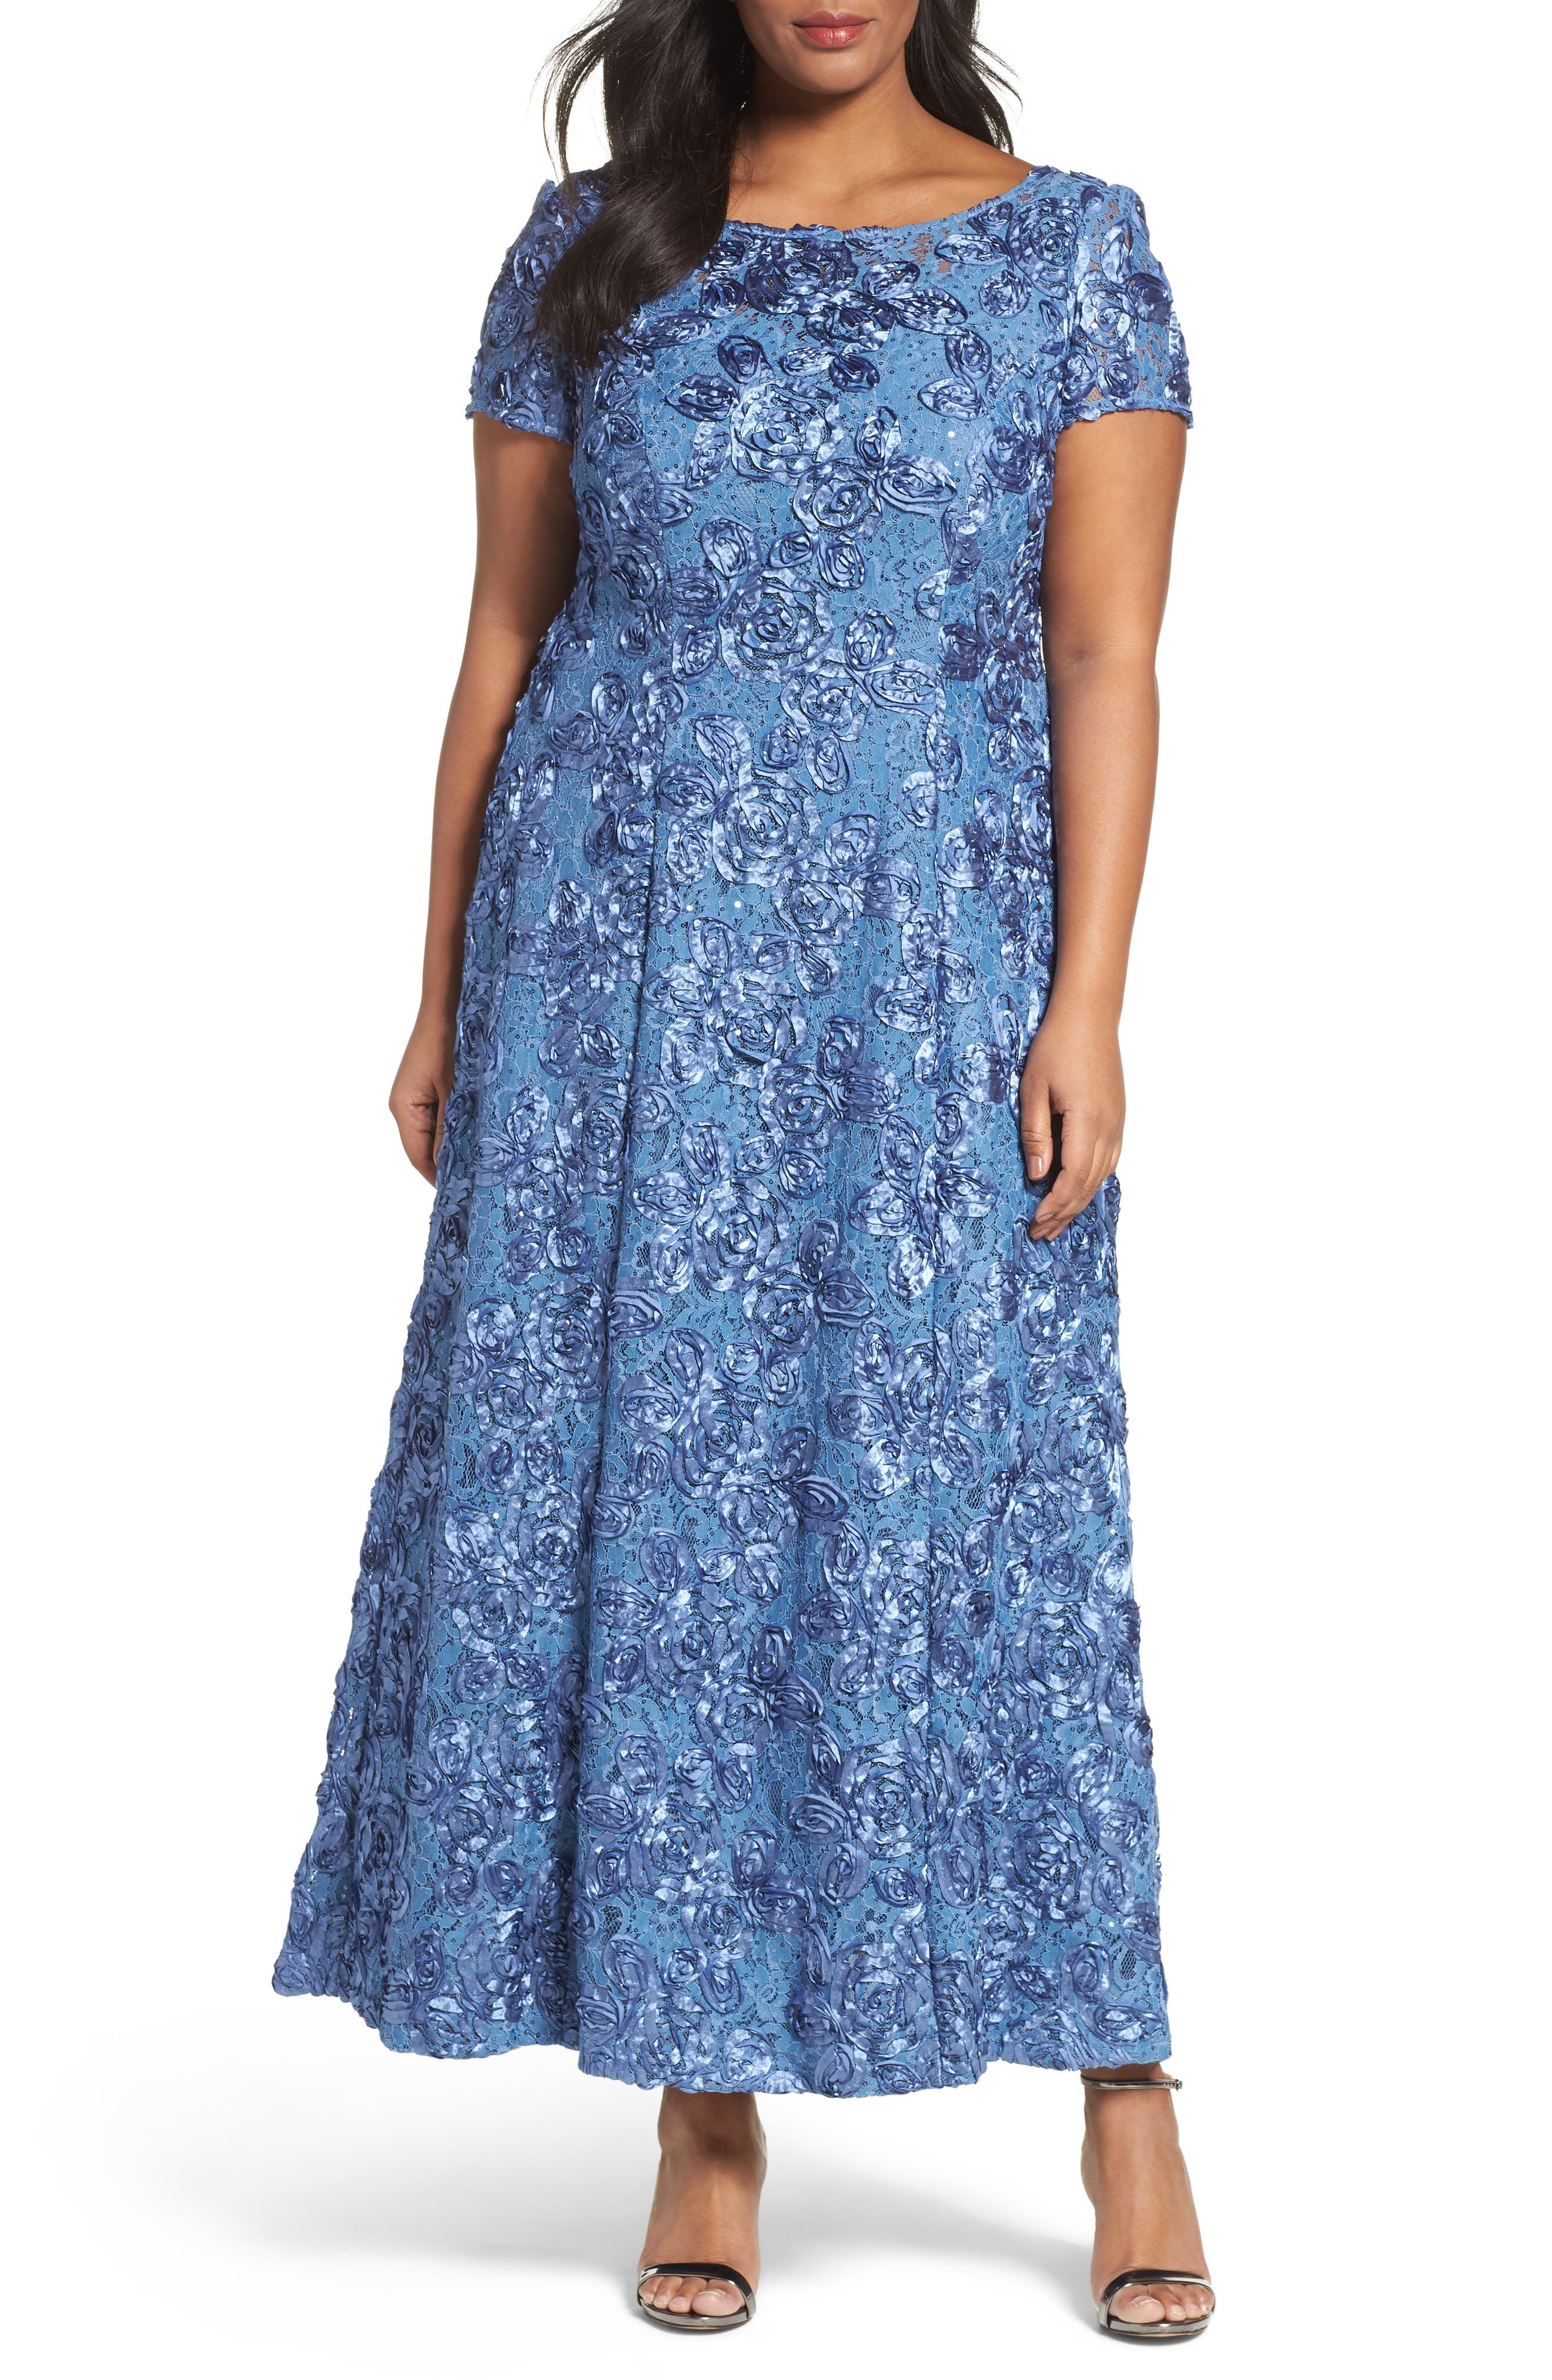 Alternate Image 1 Selected - Alex Evenings Rosette Lace Short Sleeve A-Line Gown (Plus Size)